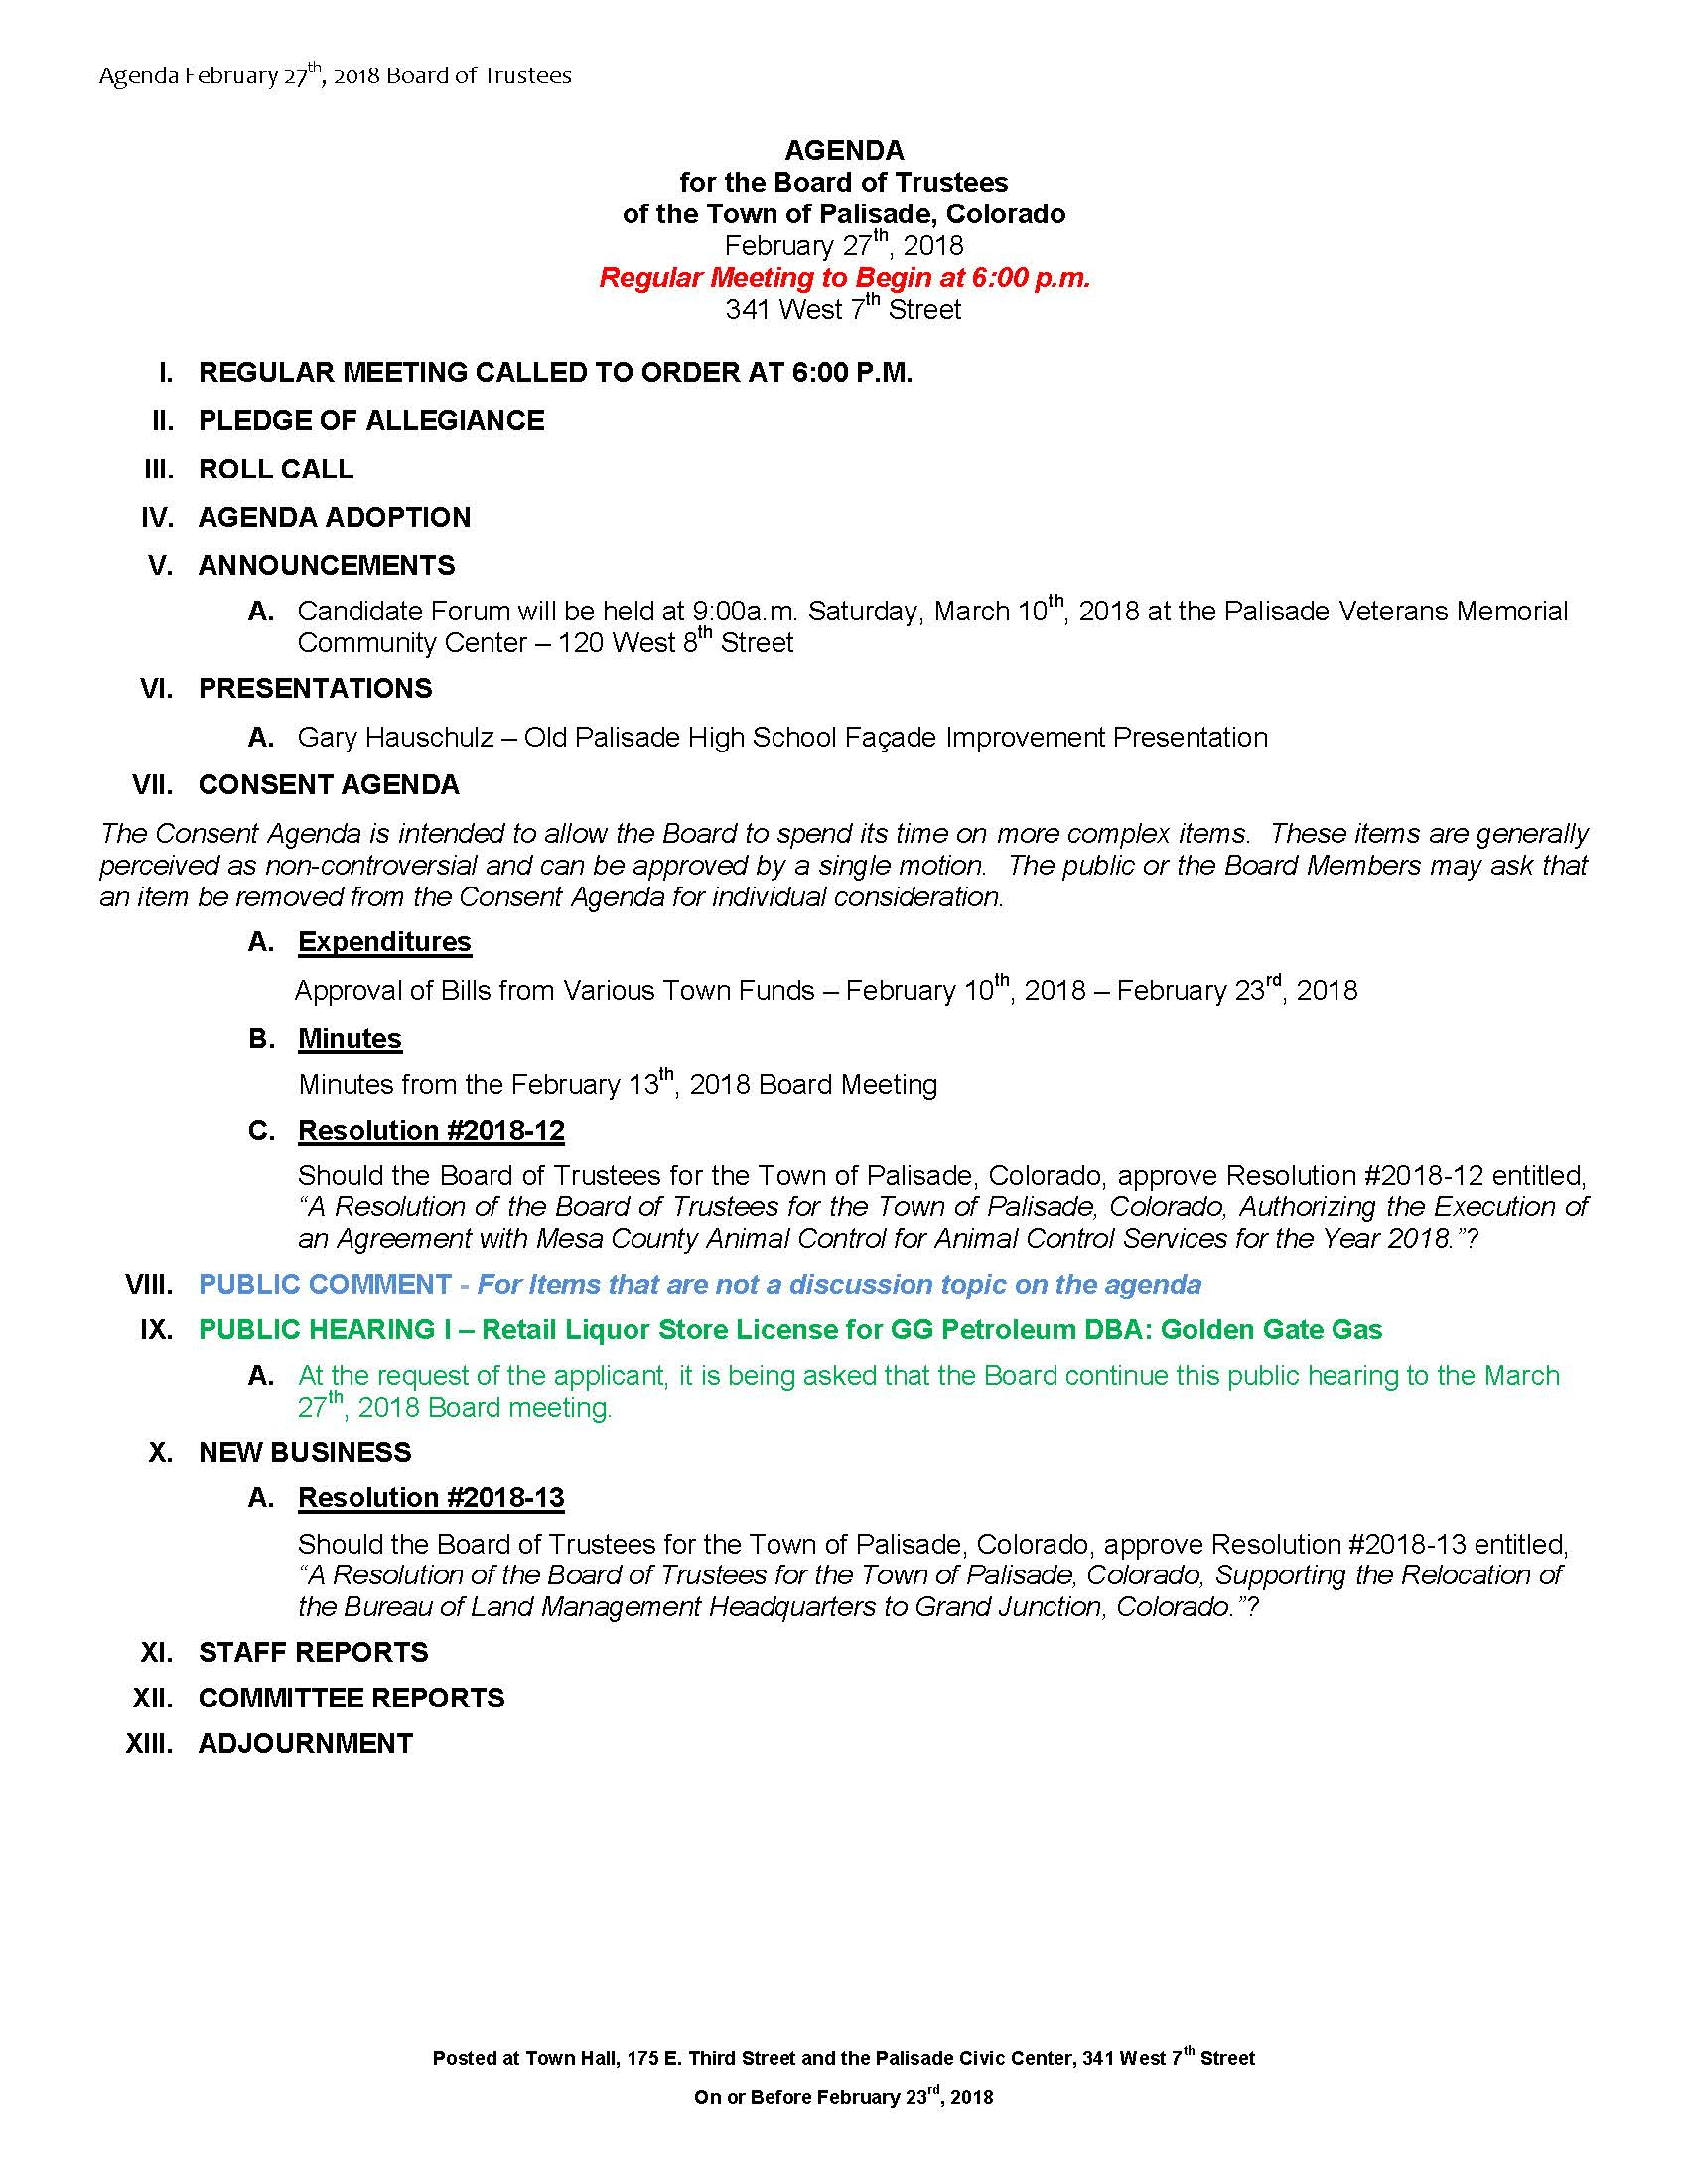 February 27th 2018 Board Meeting Agenda